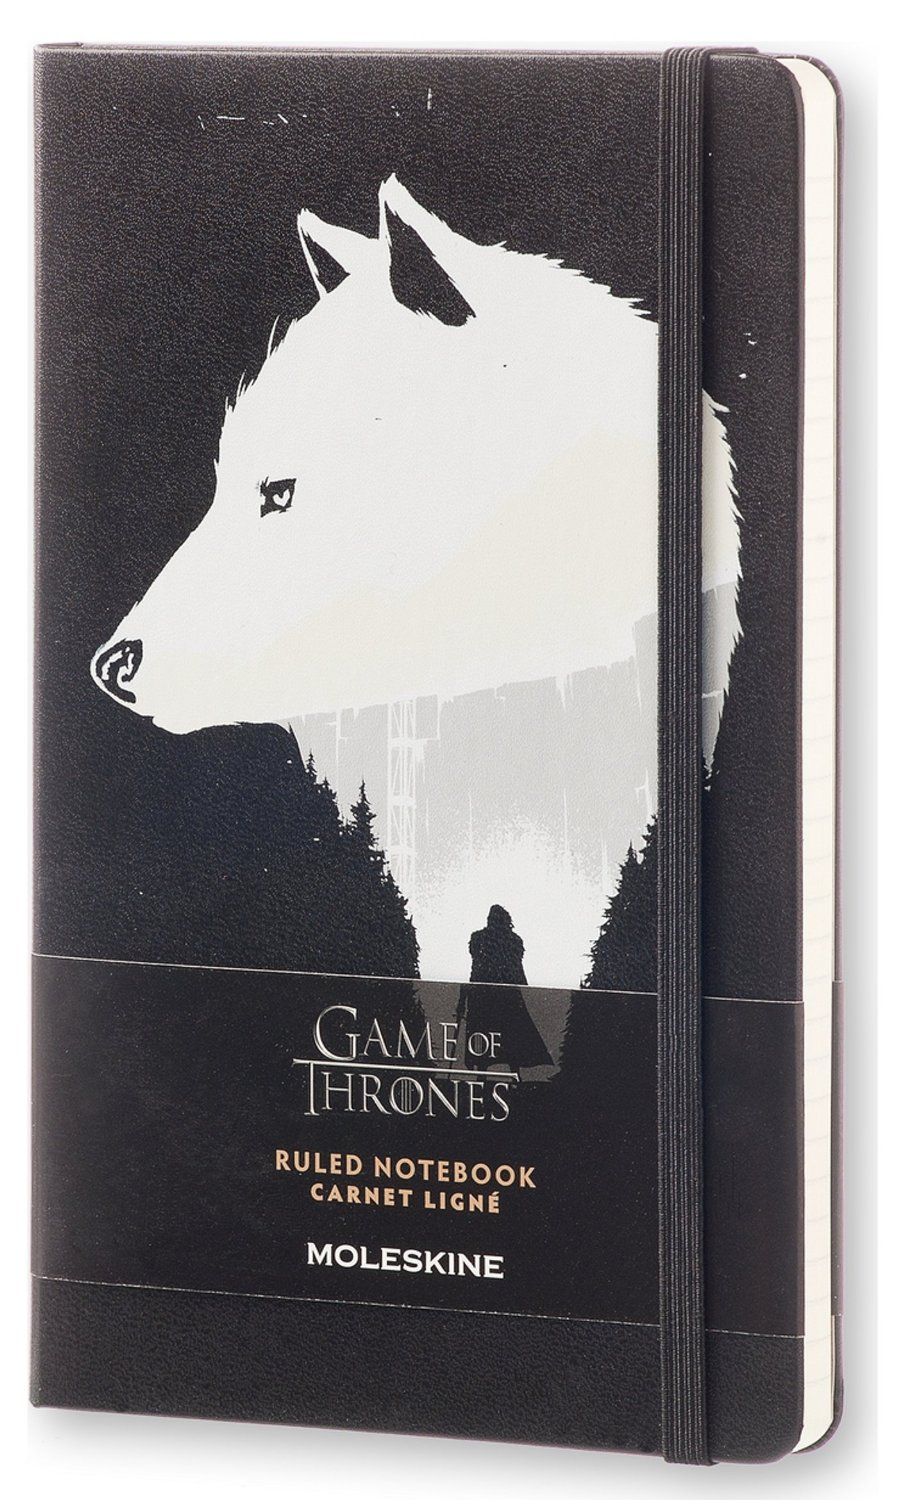 a game of thrones game of thrones jon snow large notebook